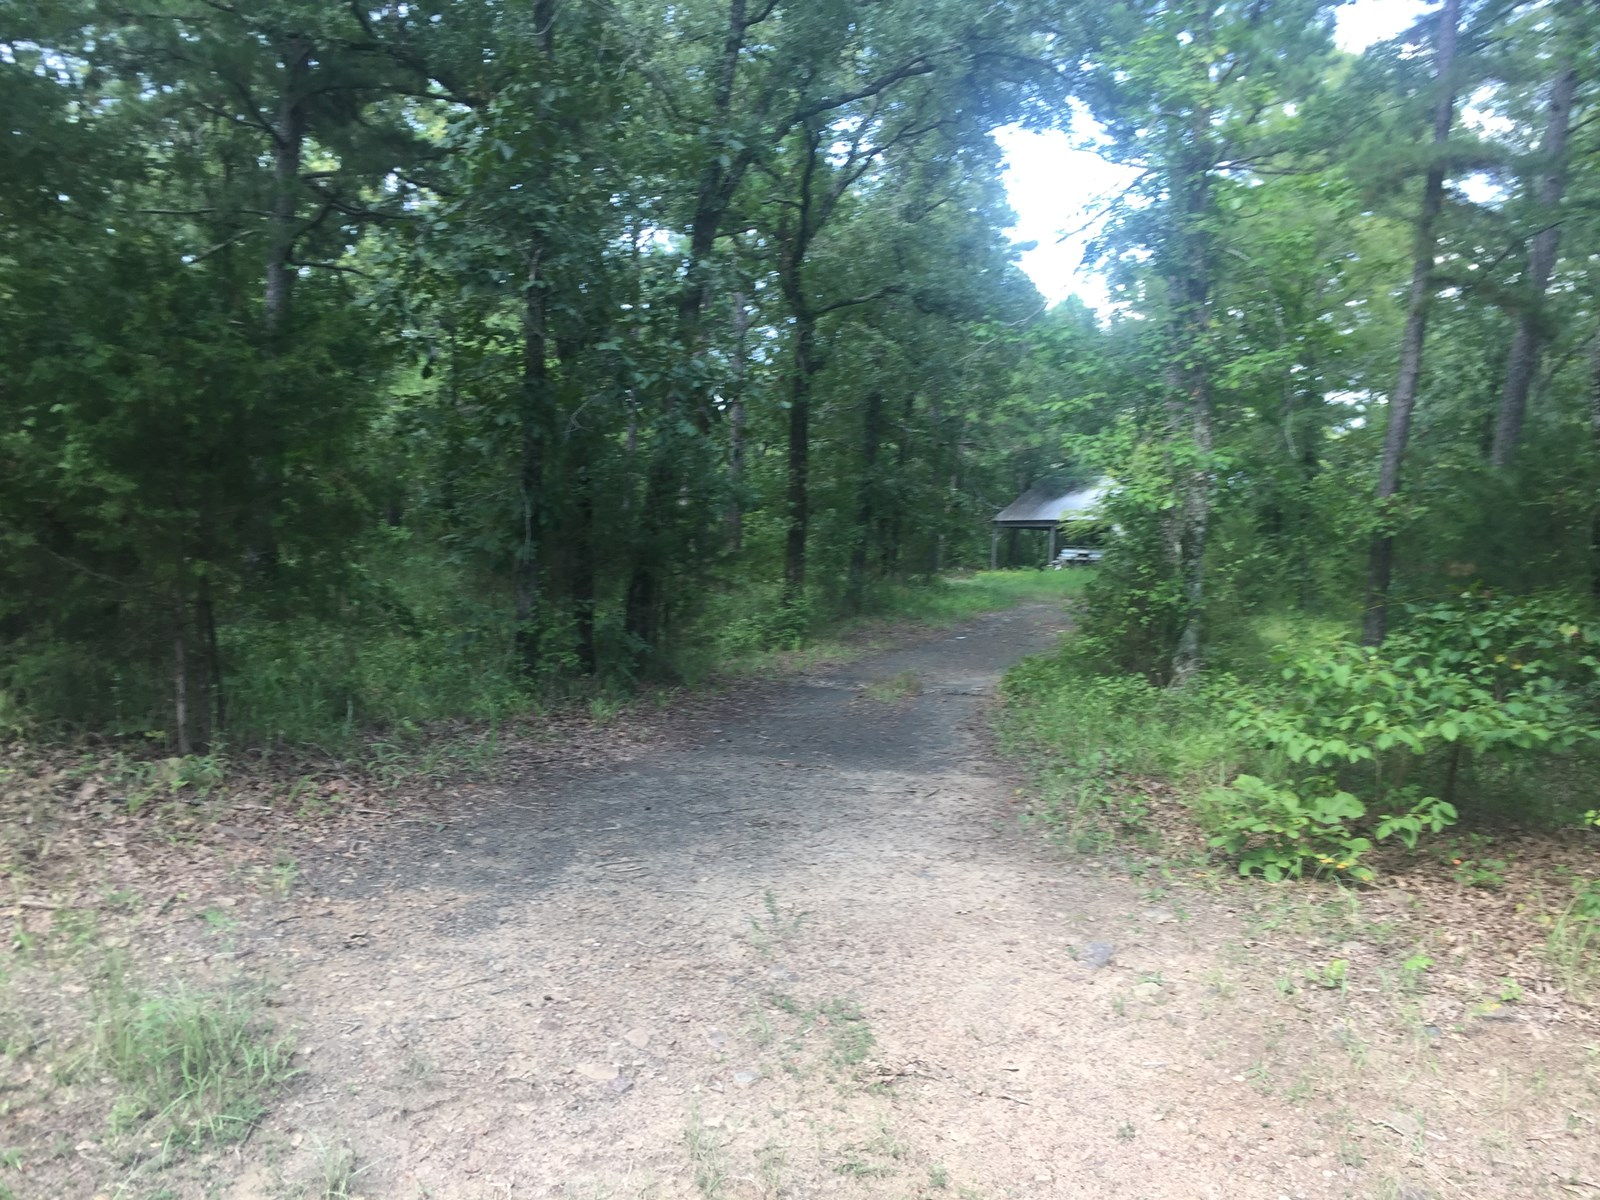 Land for Sale Finley,OK/Hunting Land for Sale UNDER CONTRACT